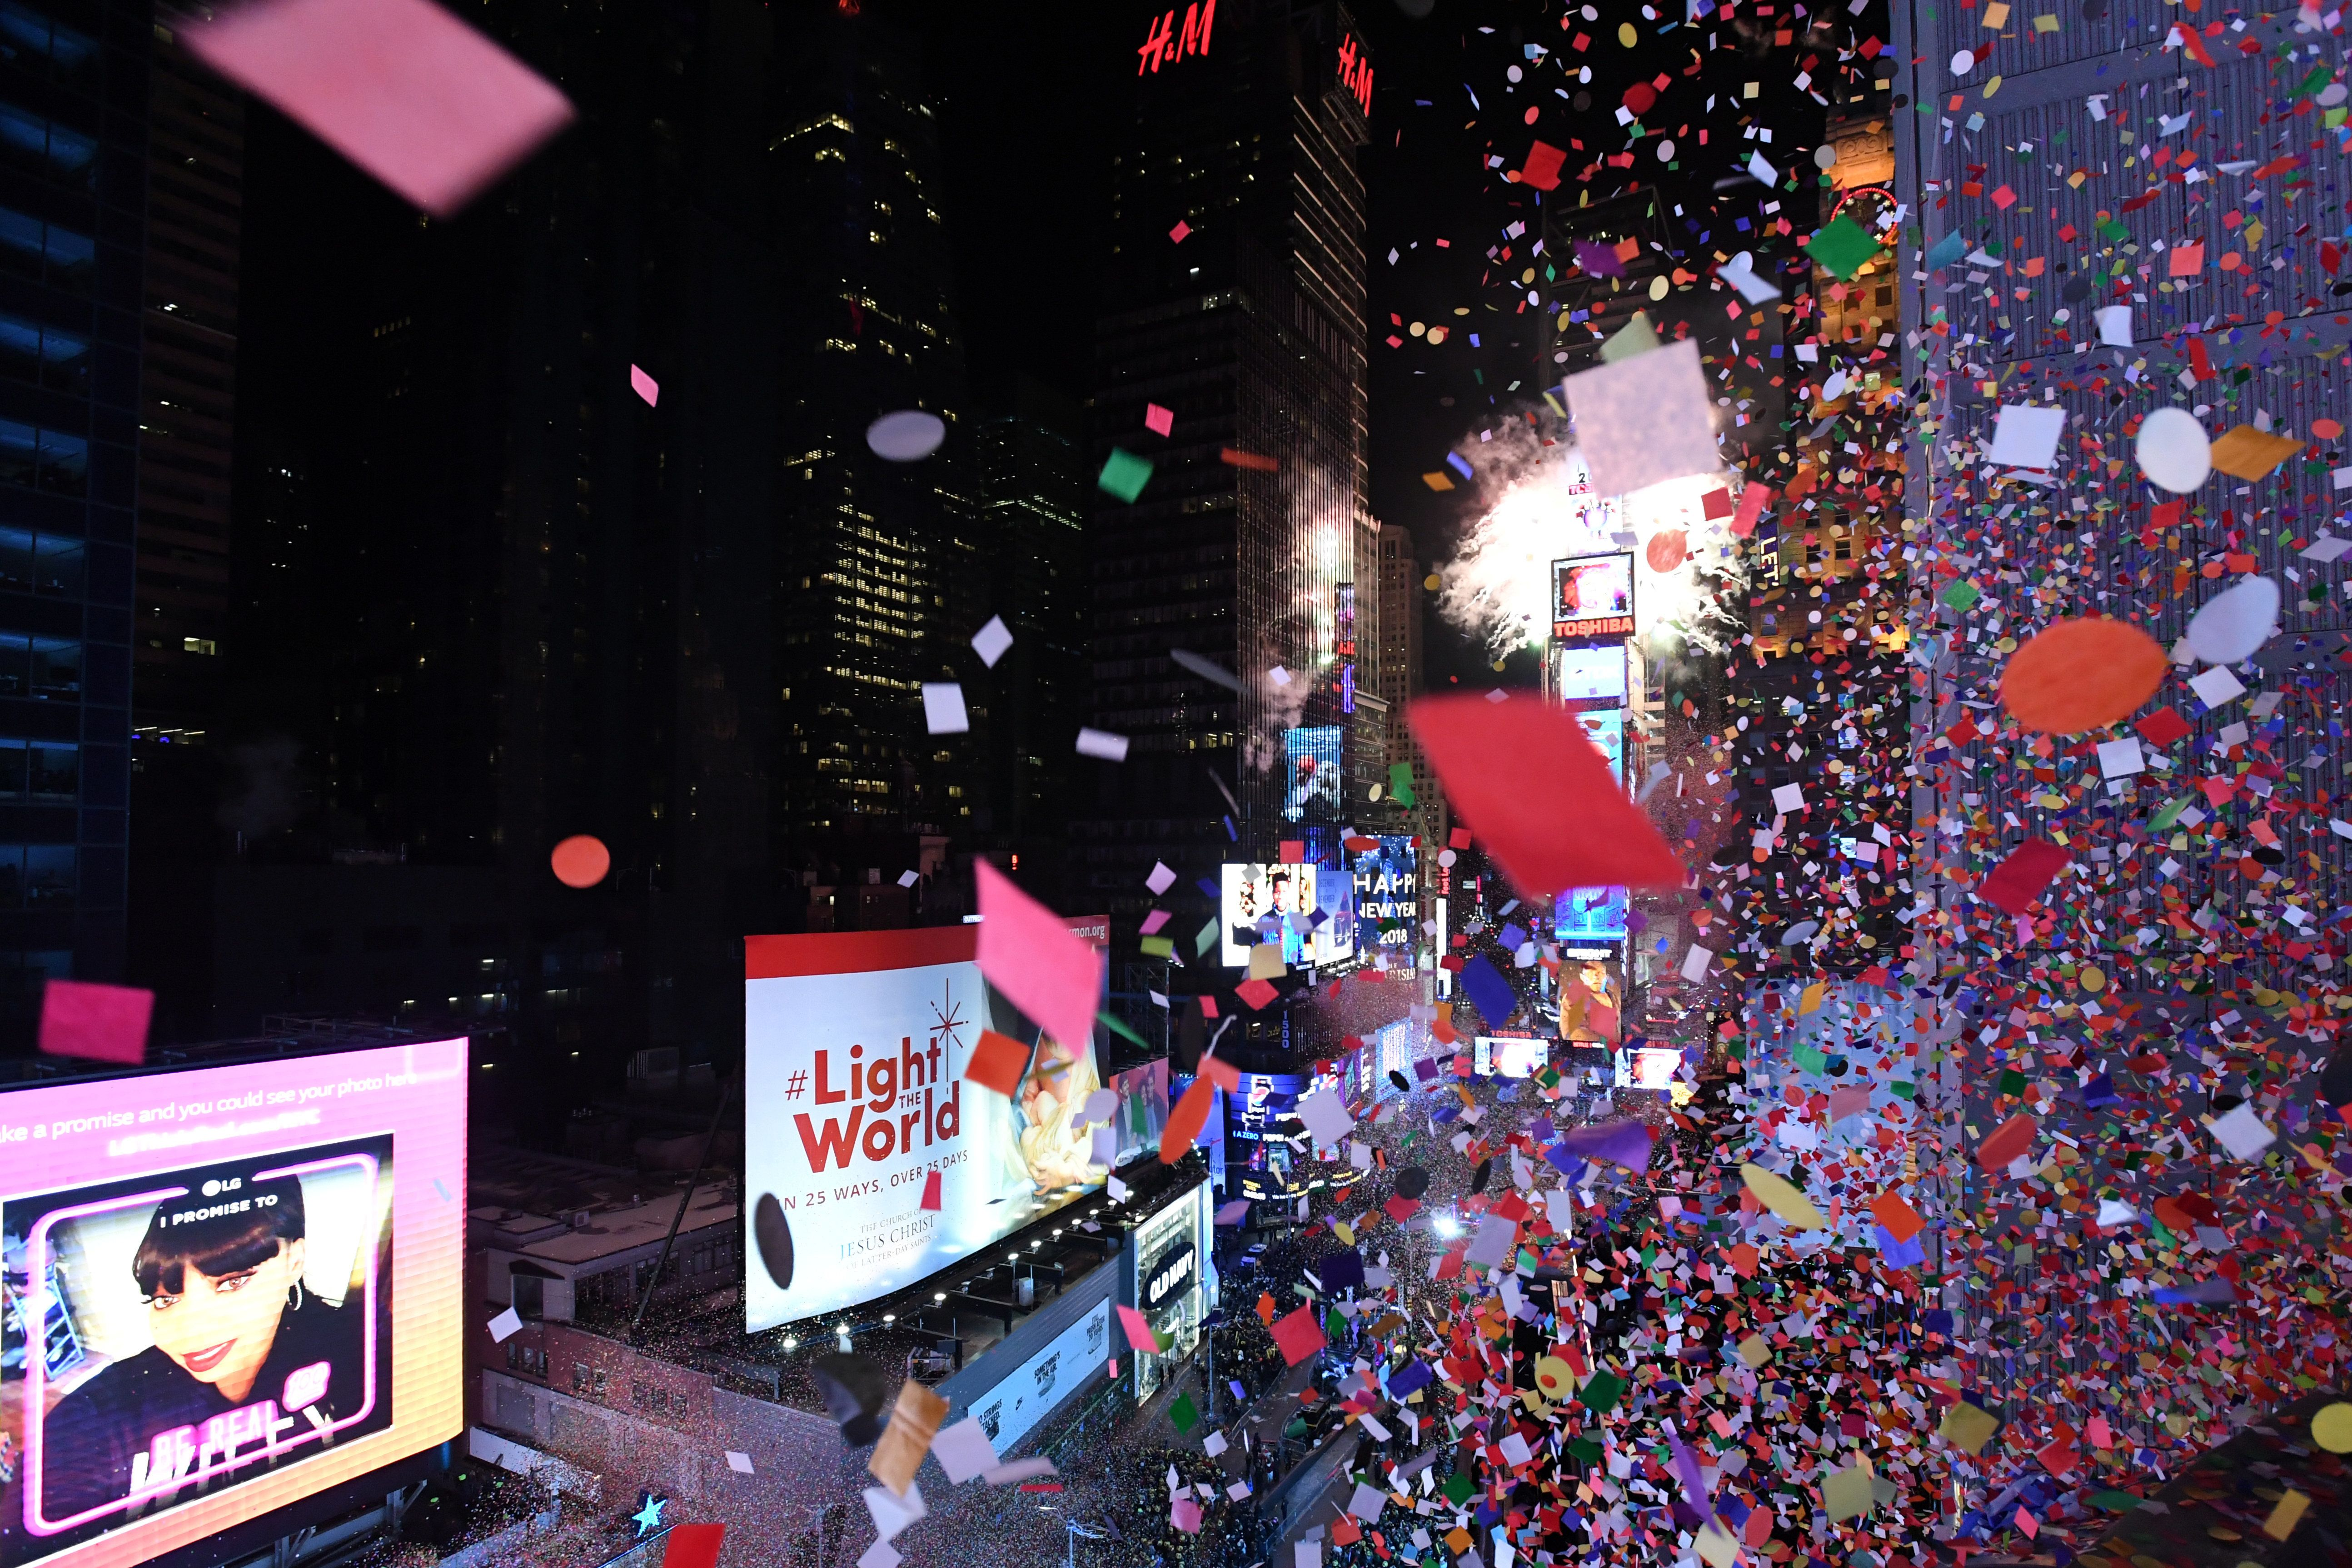 Confetti falls in Times Square just after midnight on January 1, 2018.